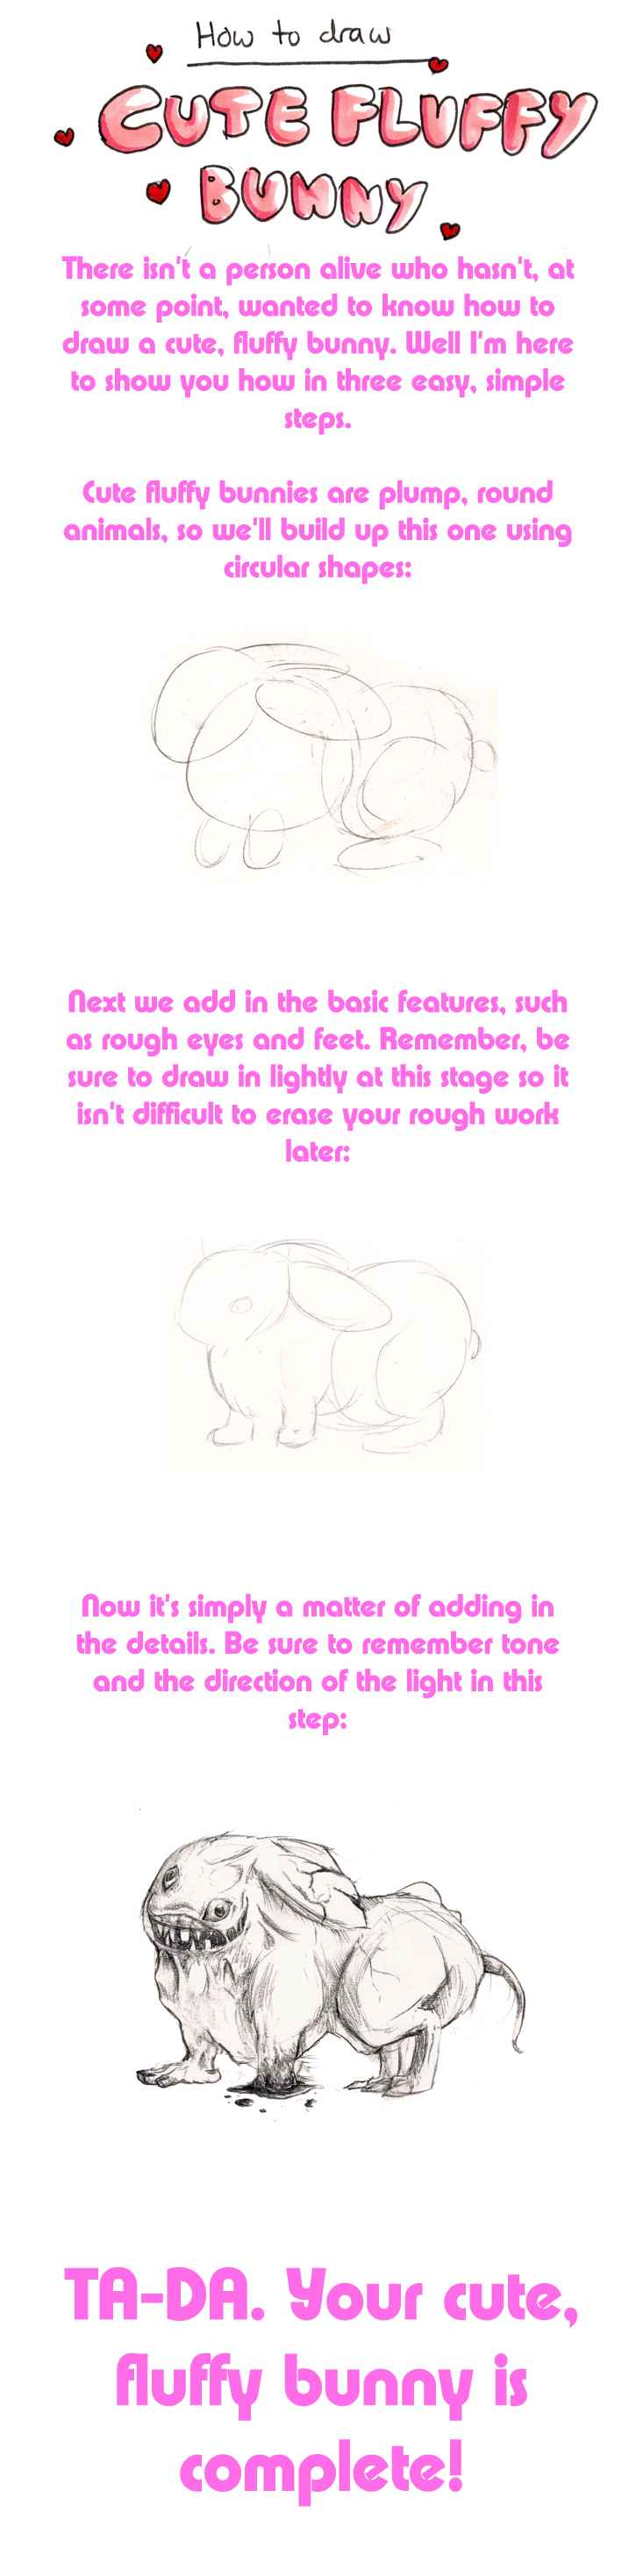 How To Draw a Cute, Fluffy Bunny by Epifex